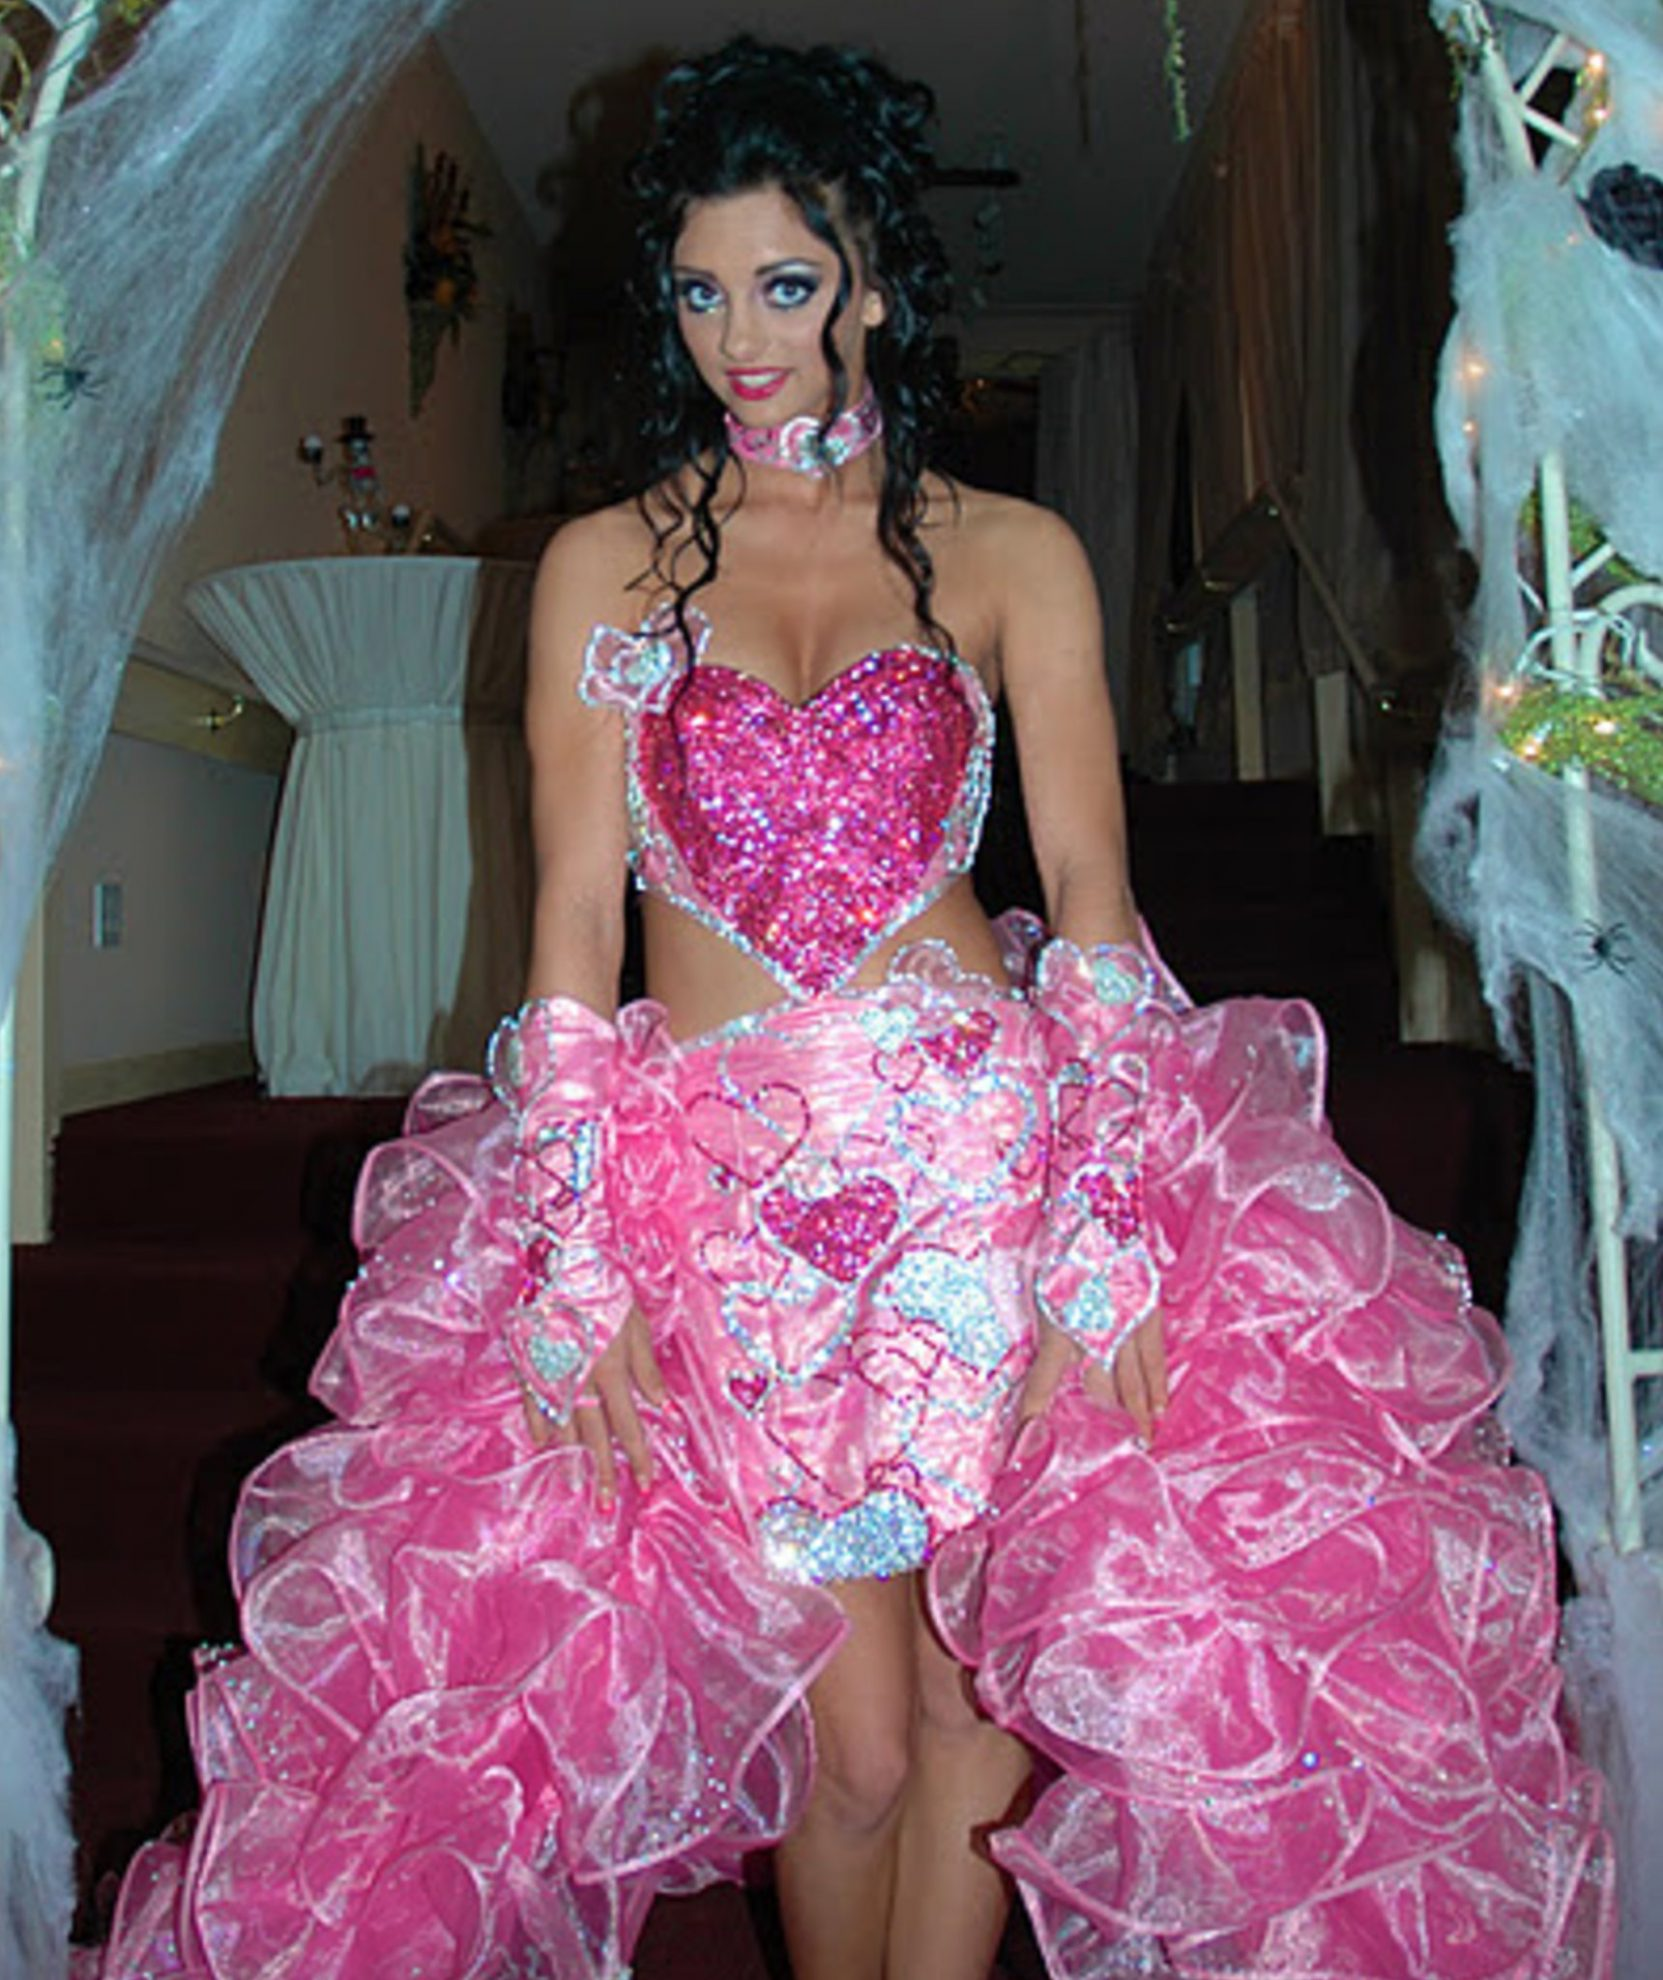 Weird wedding dress 6